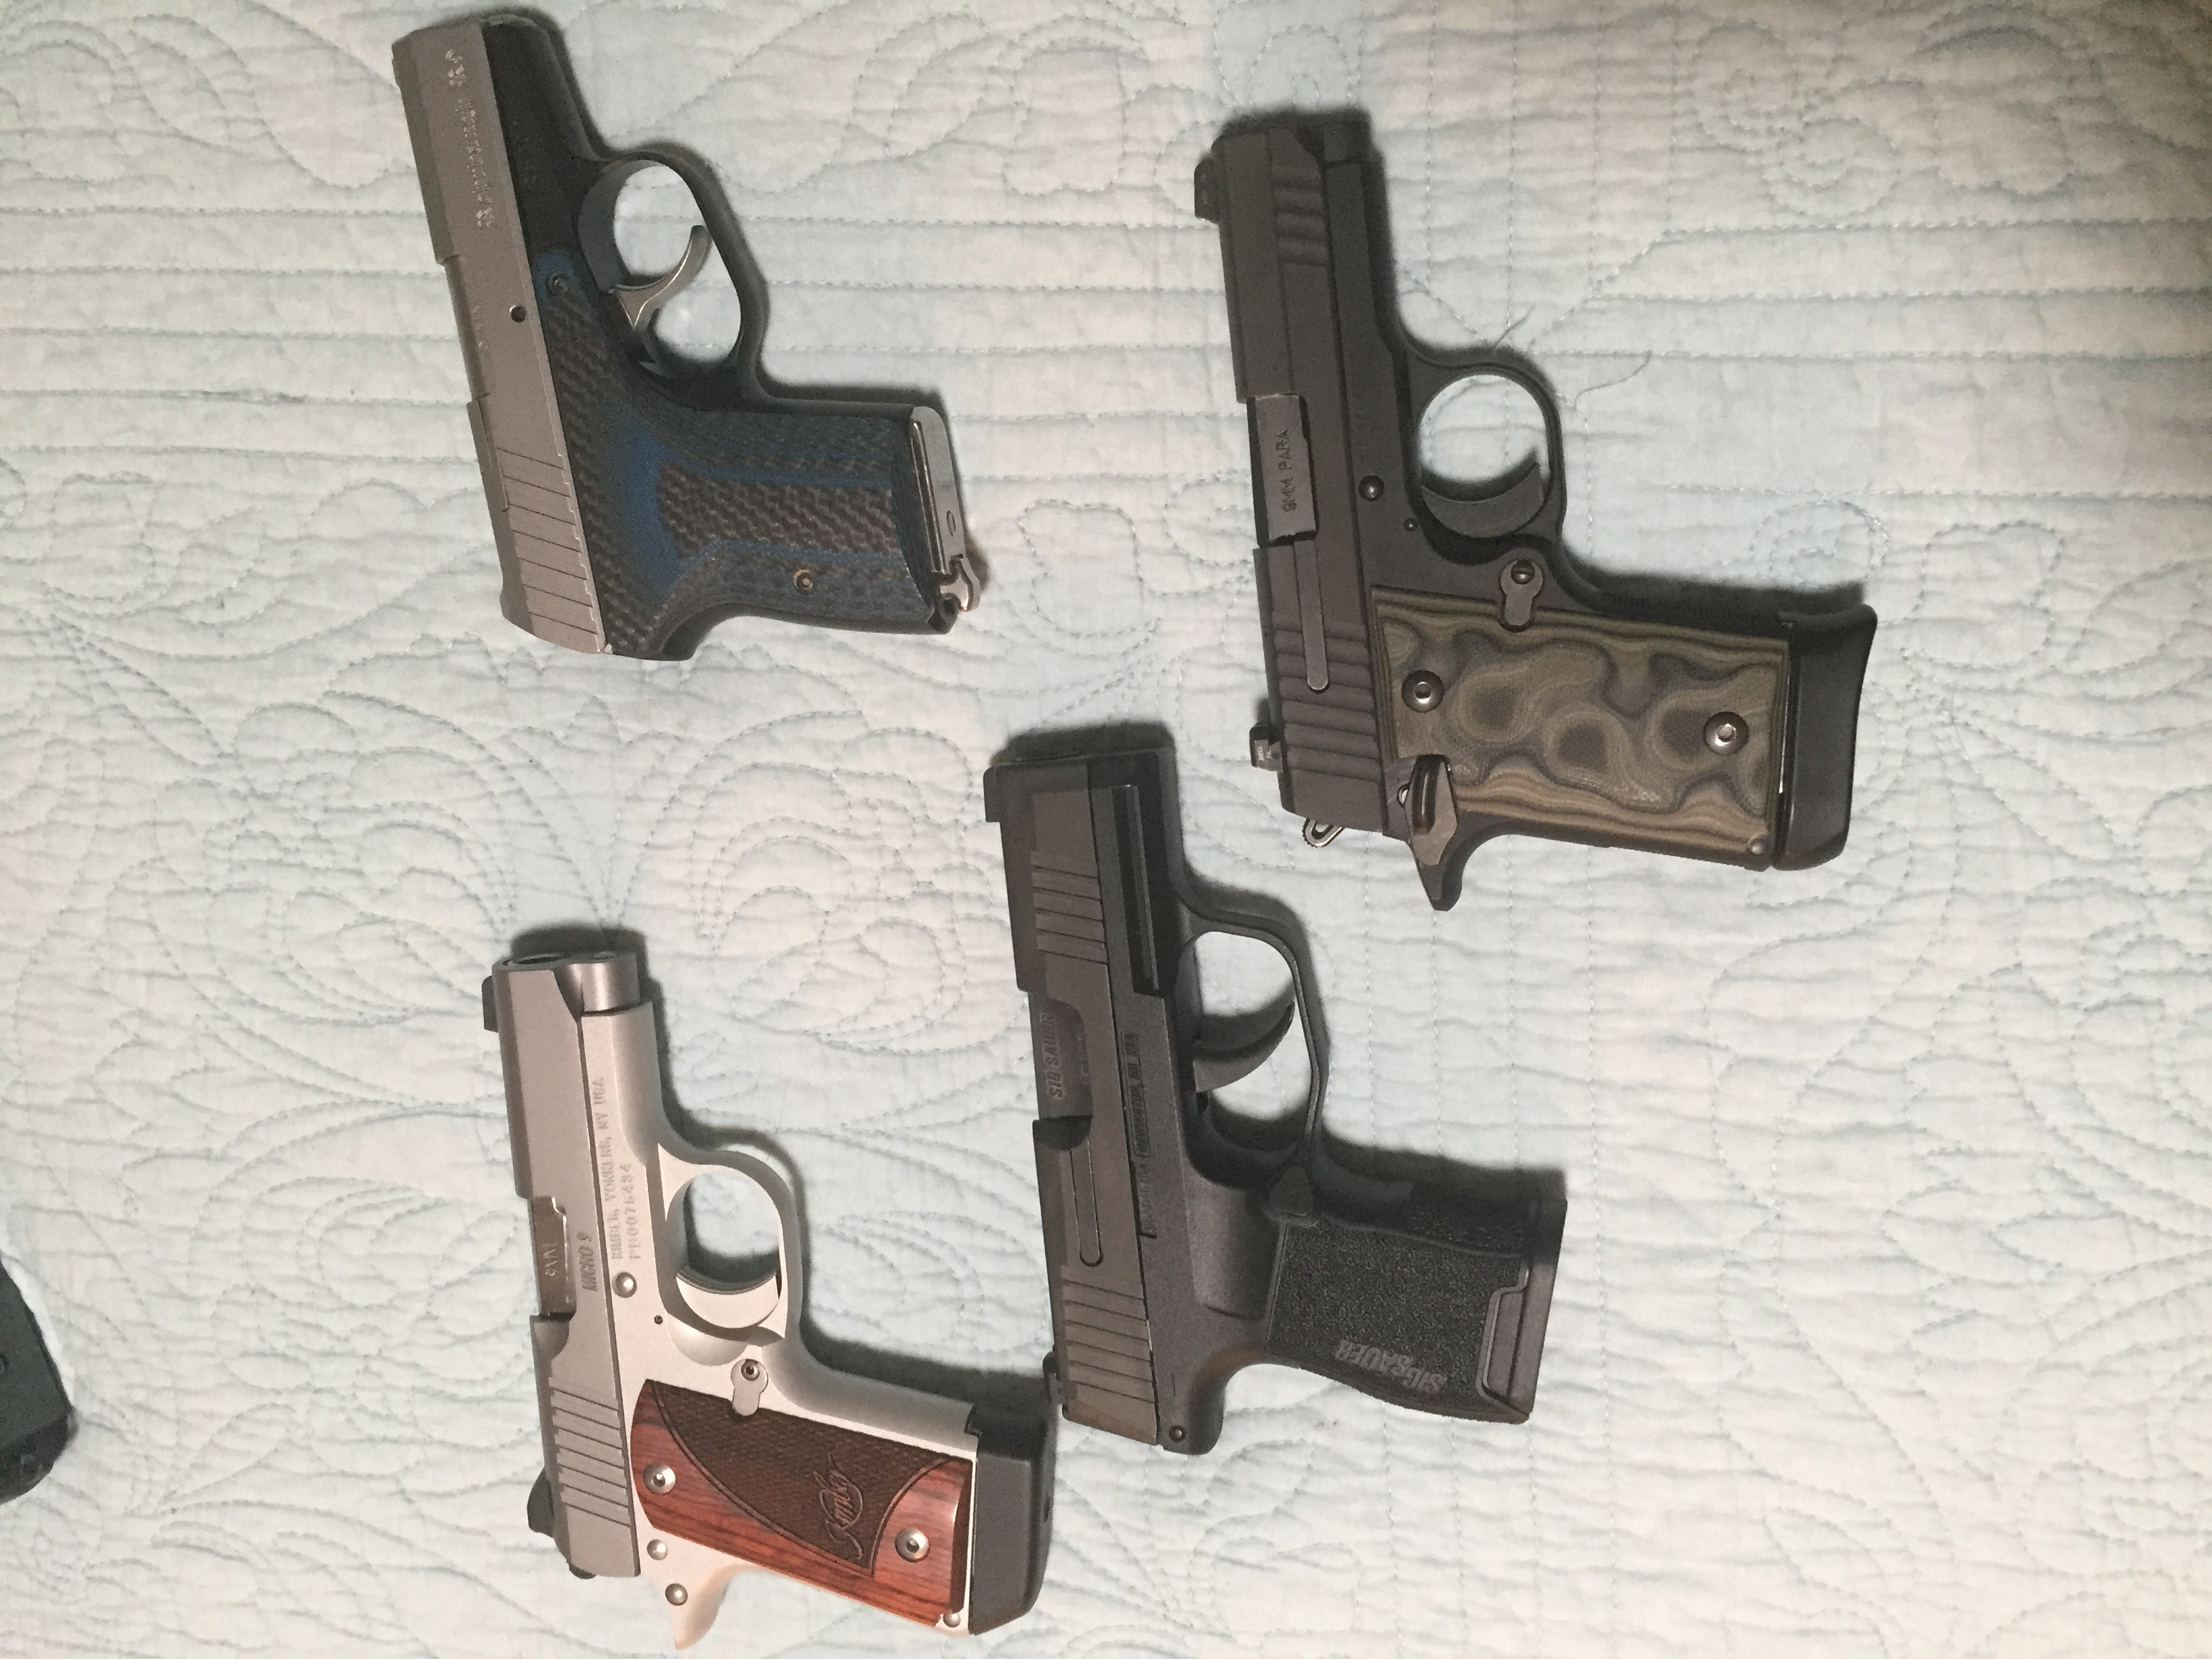 Sig Sauer P365 review  Range report, pics, and impressions